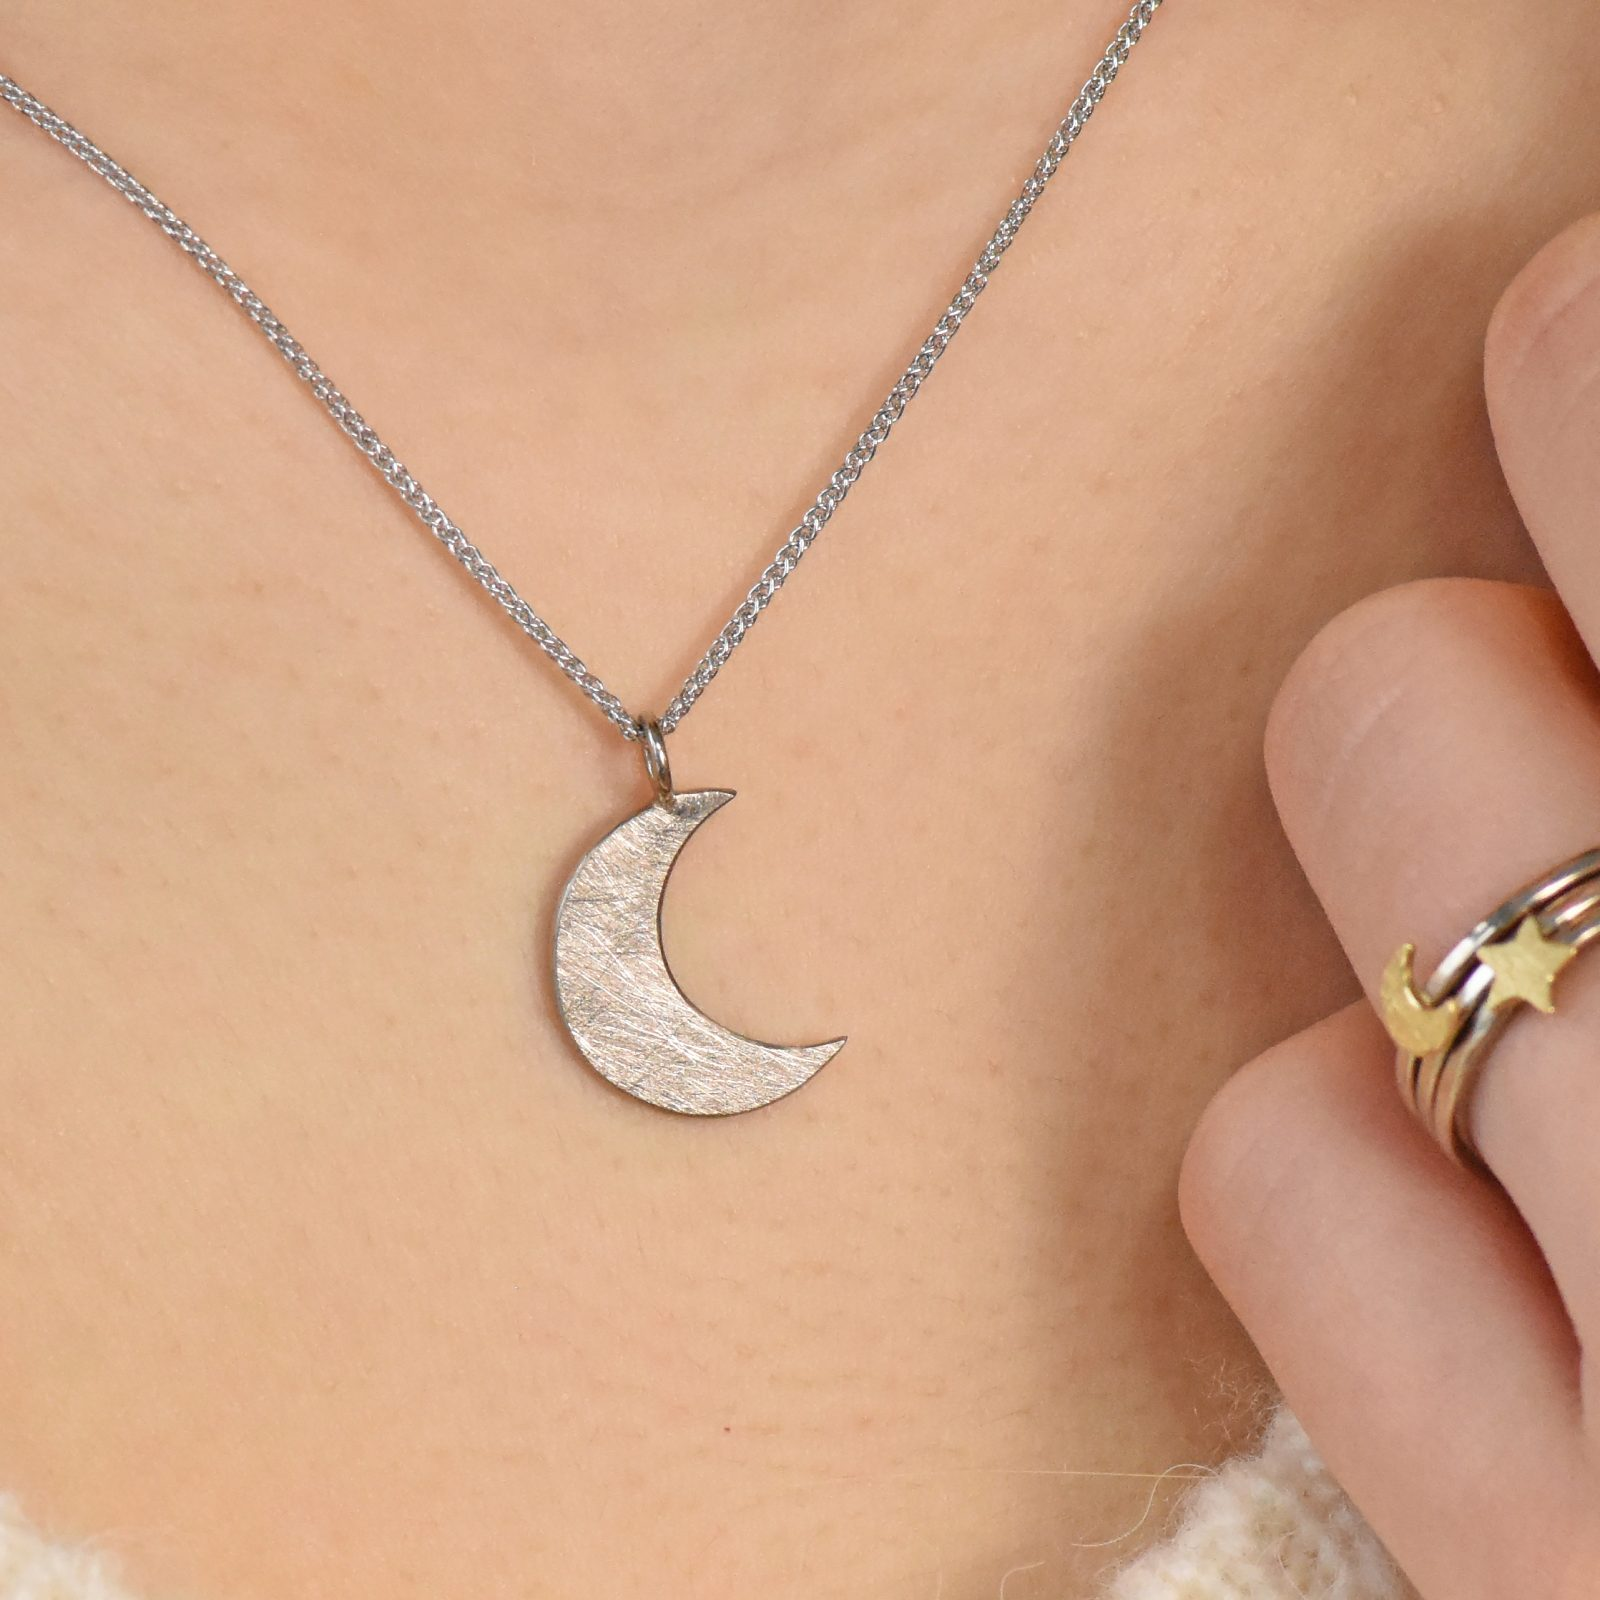 artisan trace up sil product br f gold pendants sterling moon sm silver small necklace pendant plated